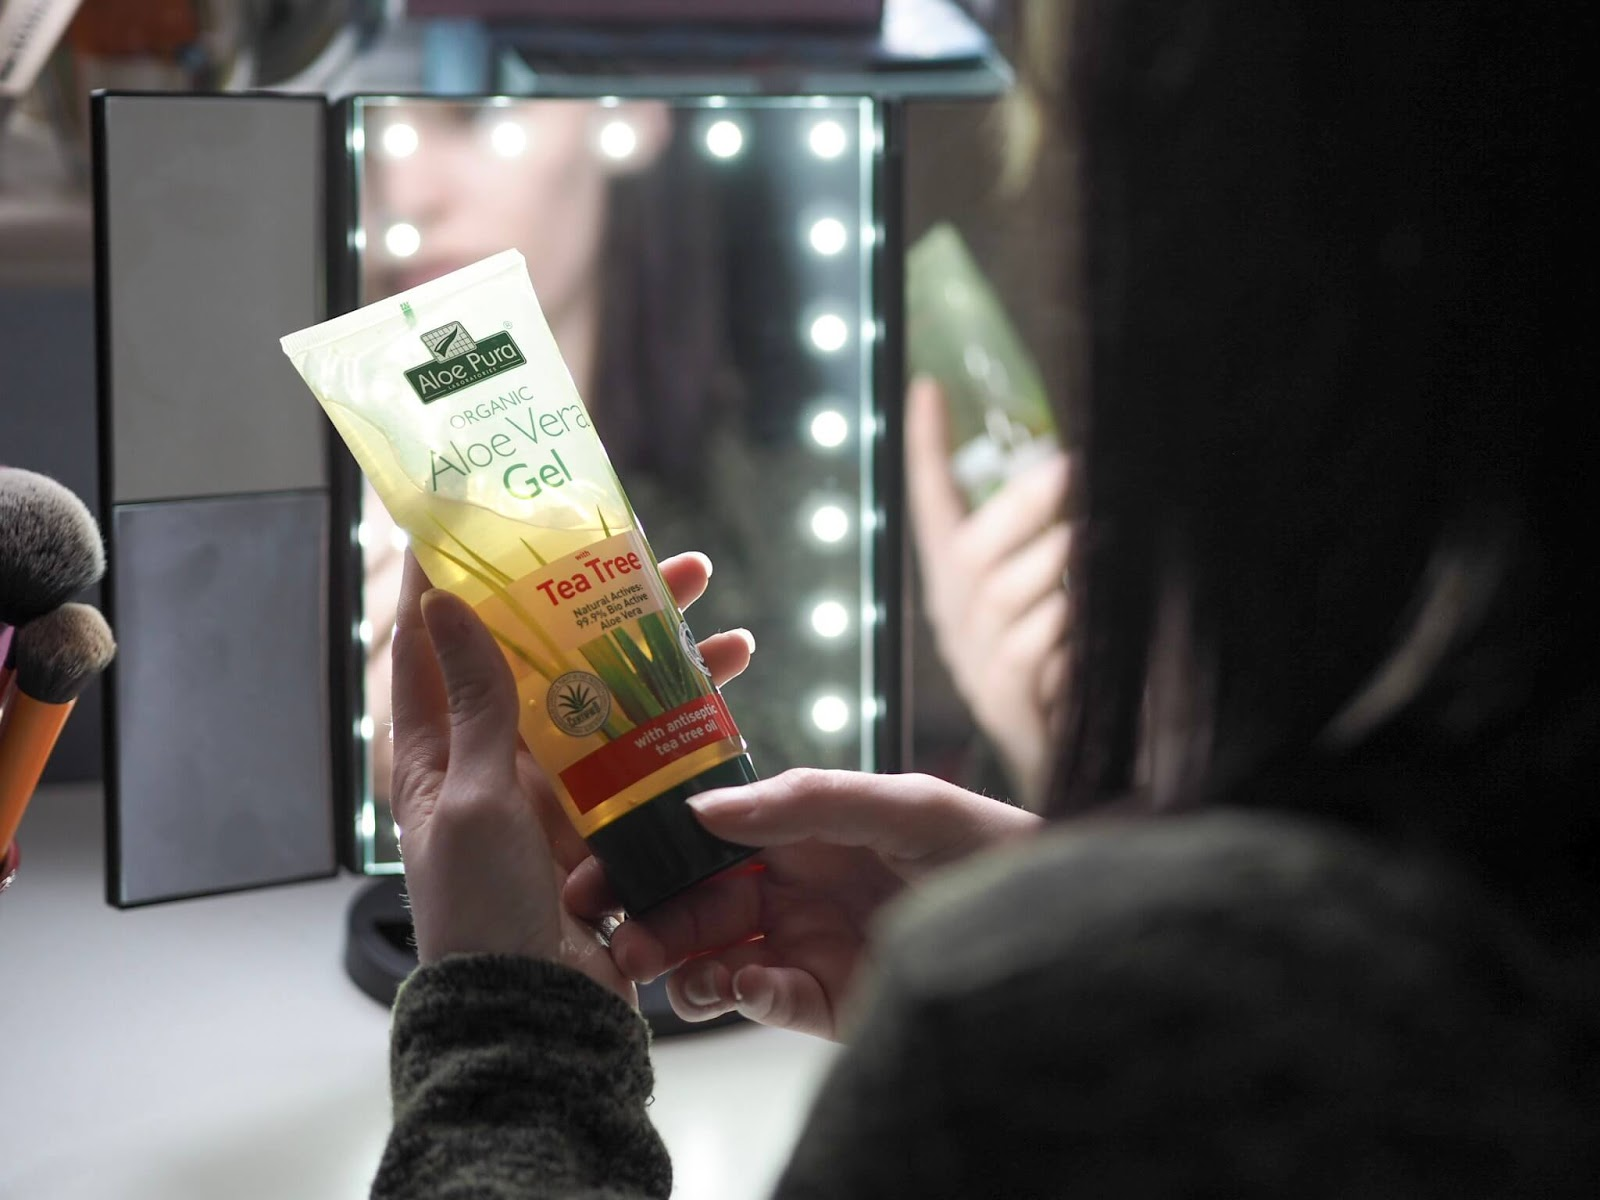 Lucy holding Aloe Vera gel near mirror